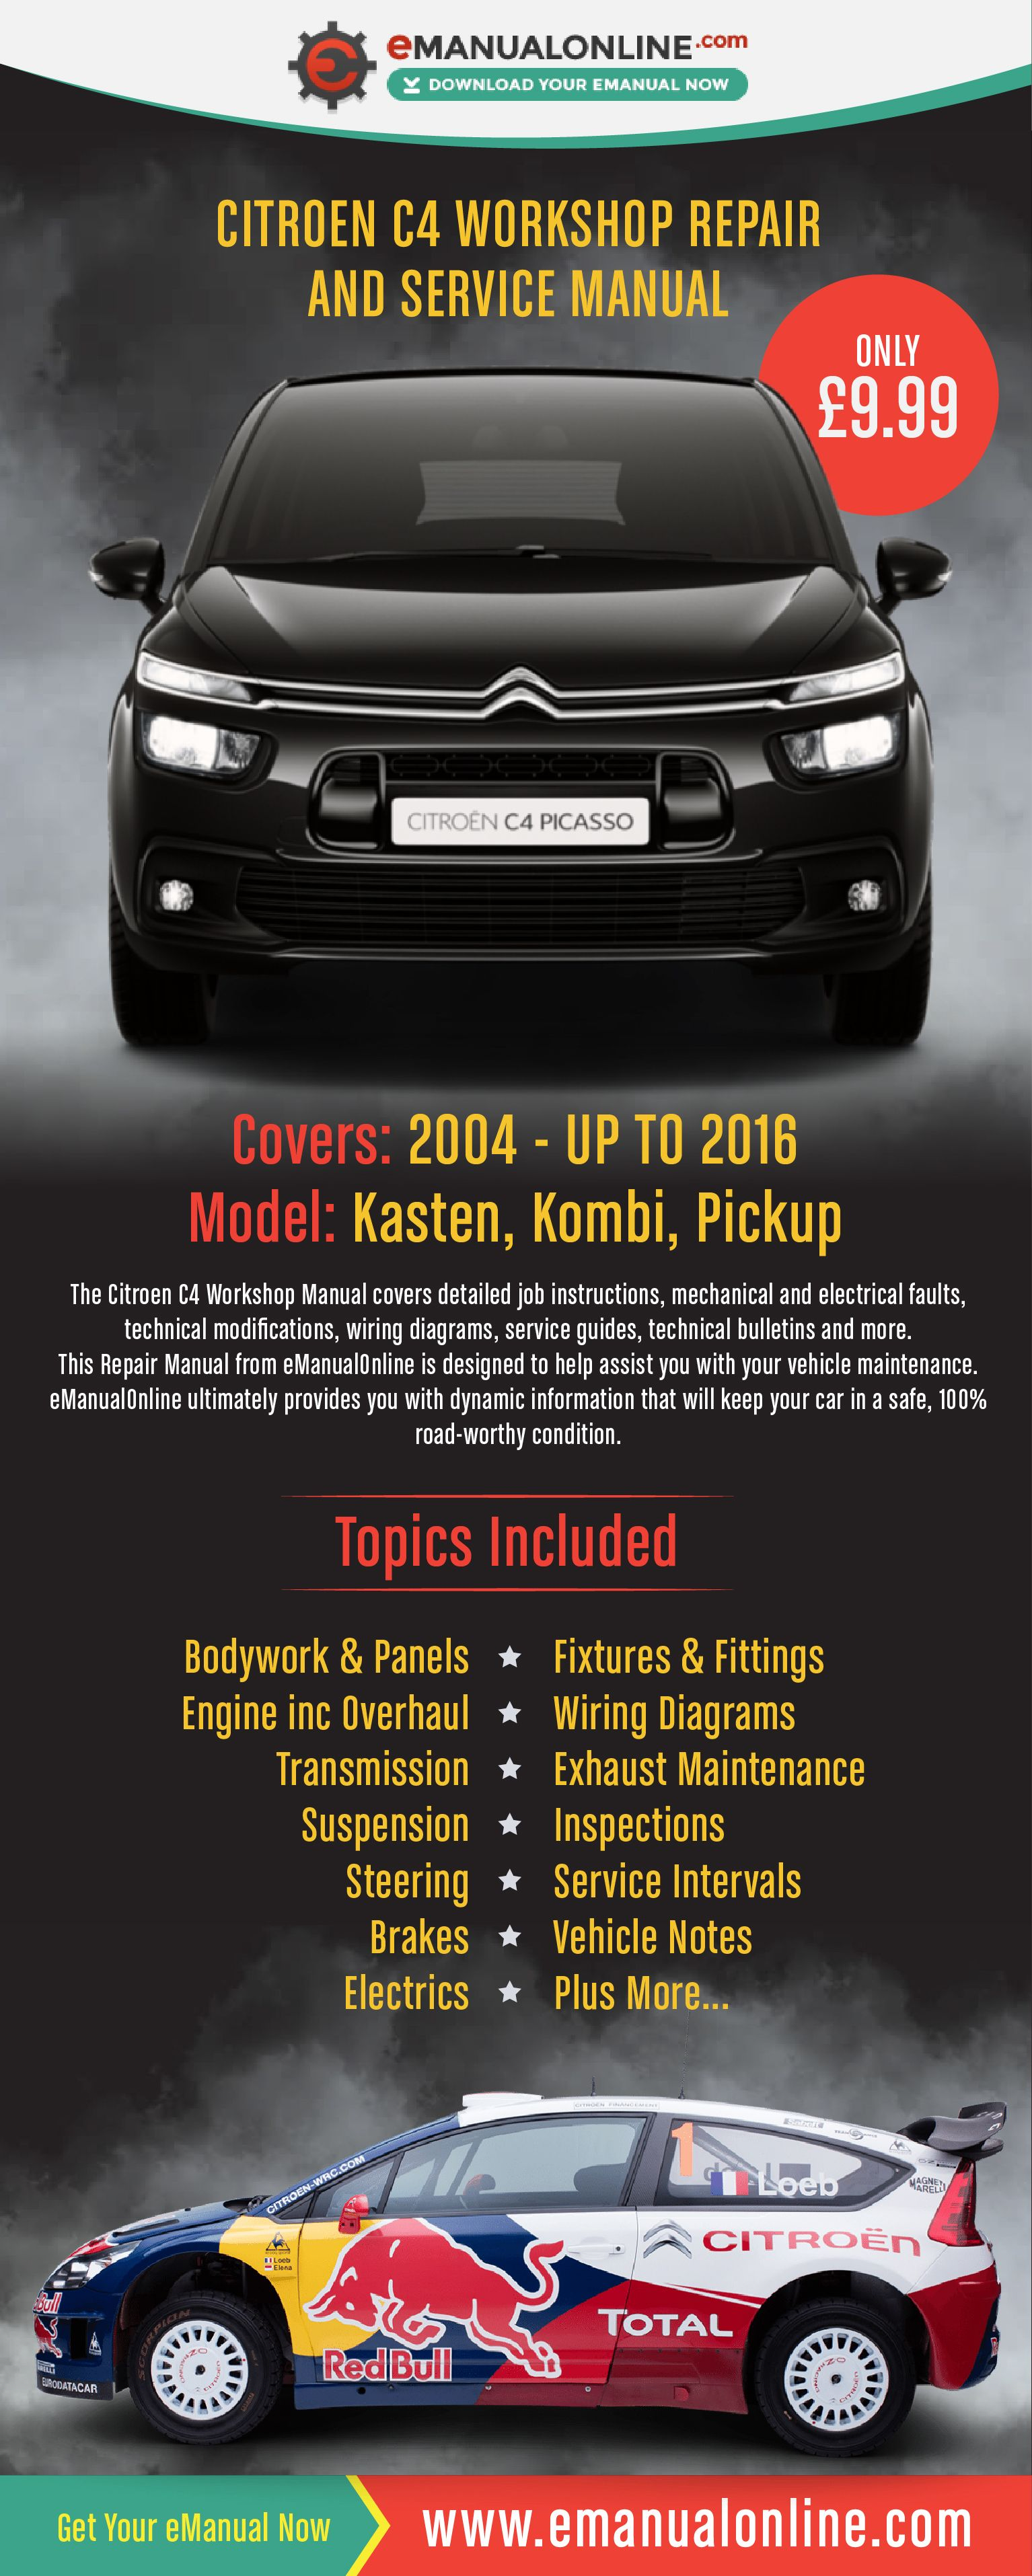 citroen c4 workshop repair and service manual advertisement 24 rh pinterest com Citroen C4 Interior New Citroen C4